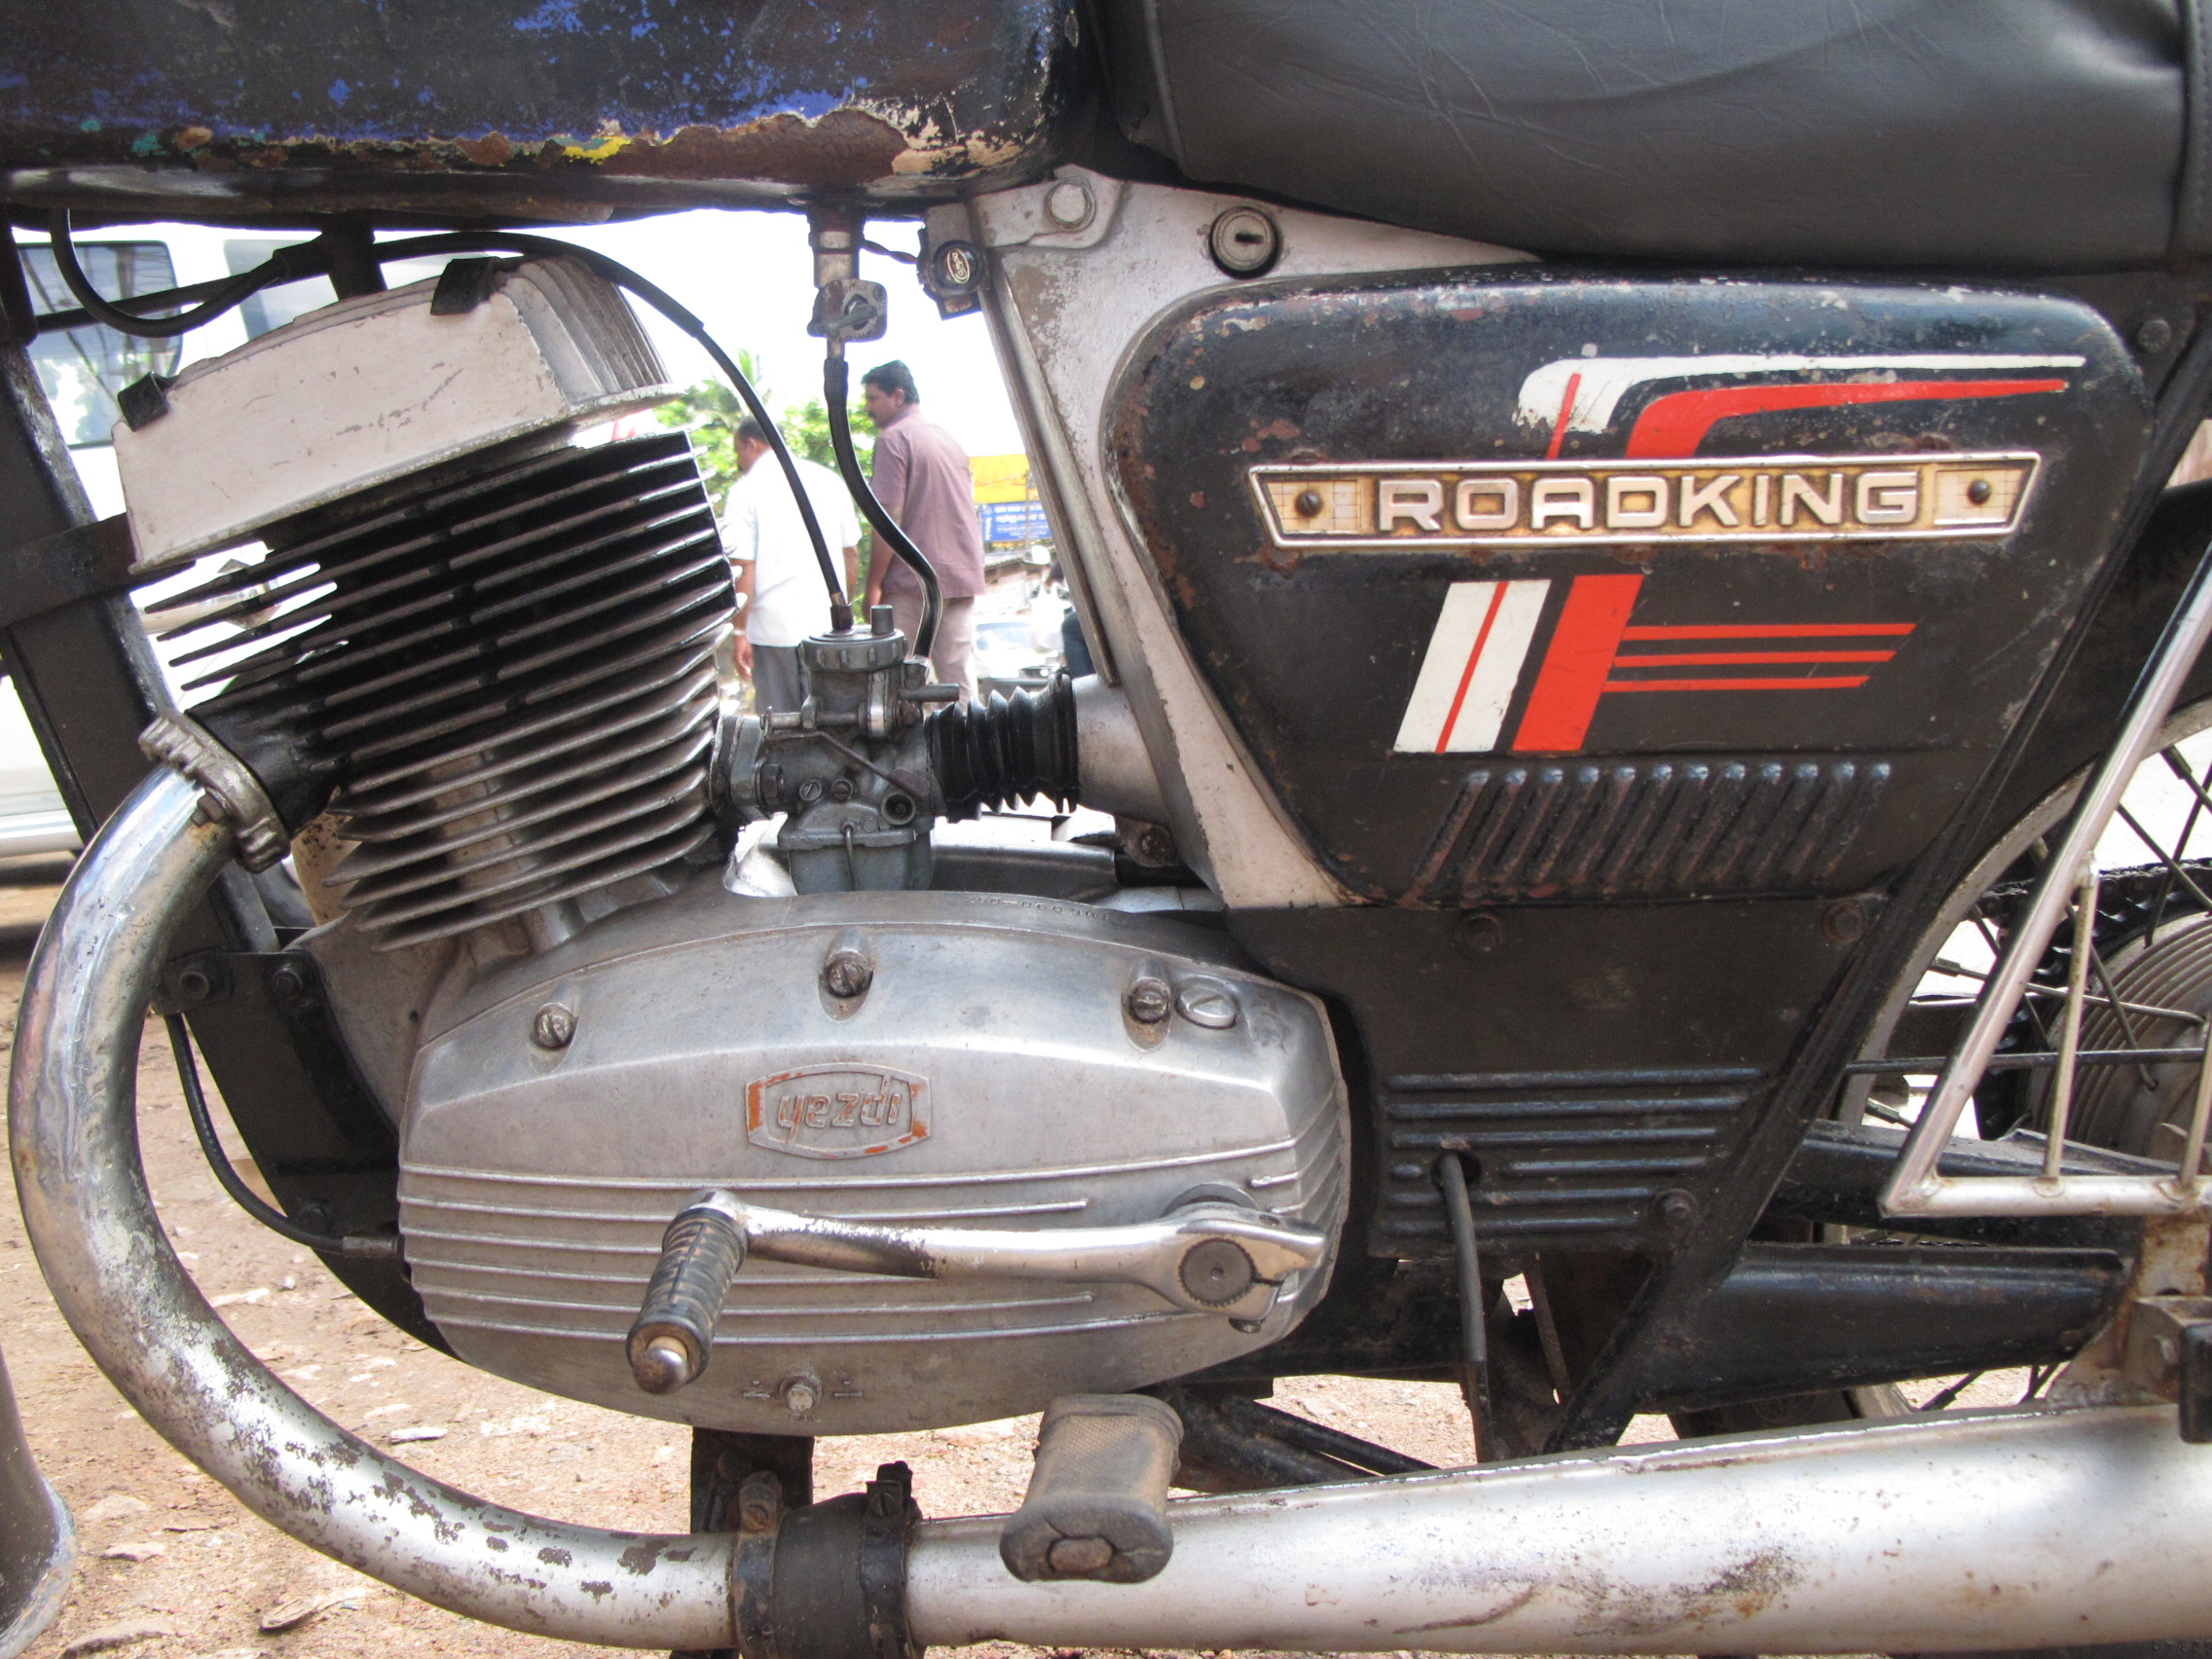 Two Stroke Motorcycles For Sale Australia